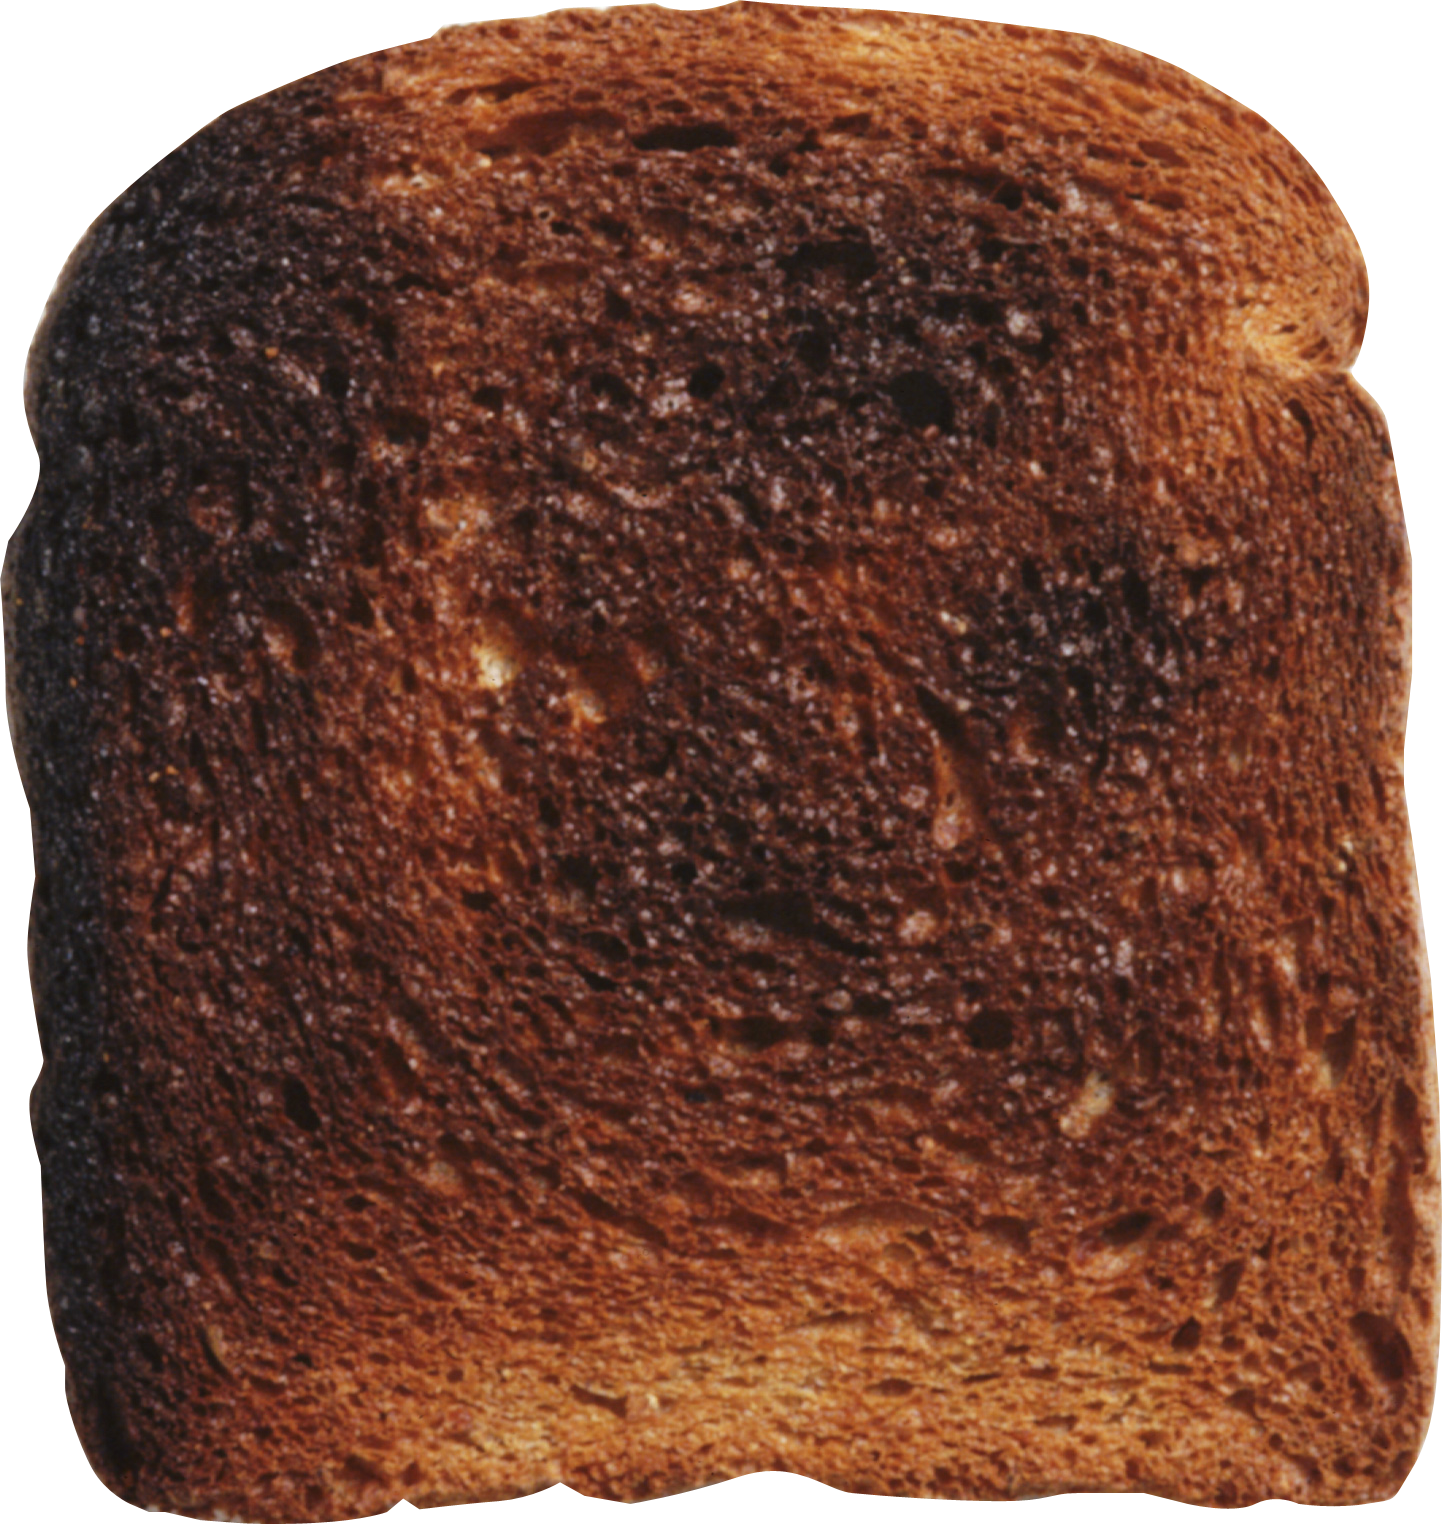 Clipart bread two. Png image free download